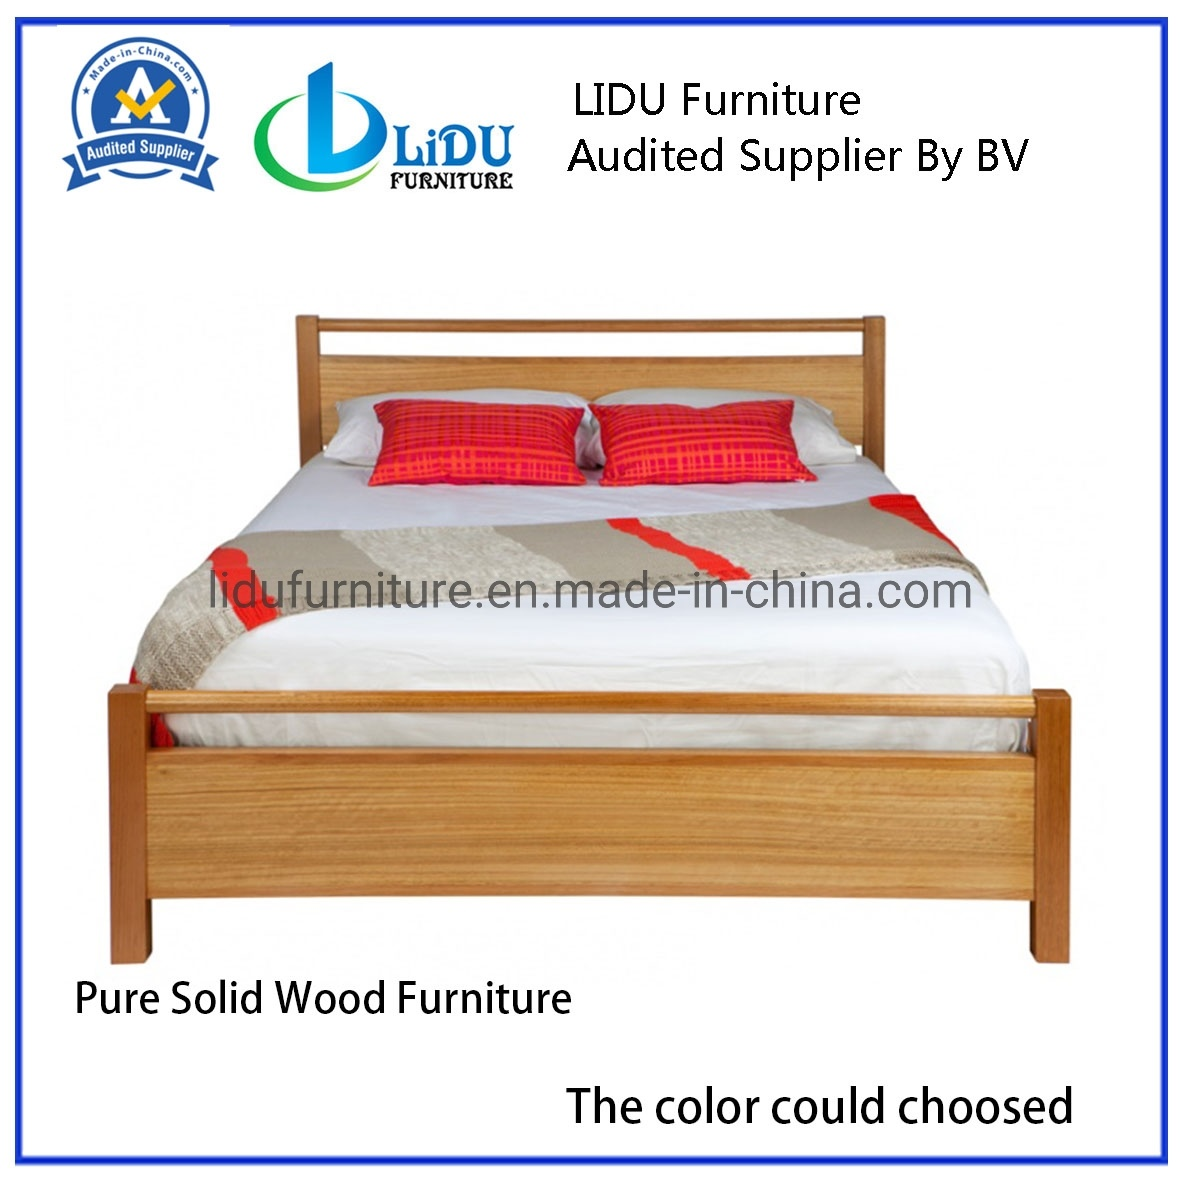 China Solid Wood Bed Pine Bedroom Furniture Modern Bed Solid Wooden Bed From China Pine Wood Kids Bunk Beds For Sale Photos Pictures Made In China Com